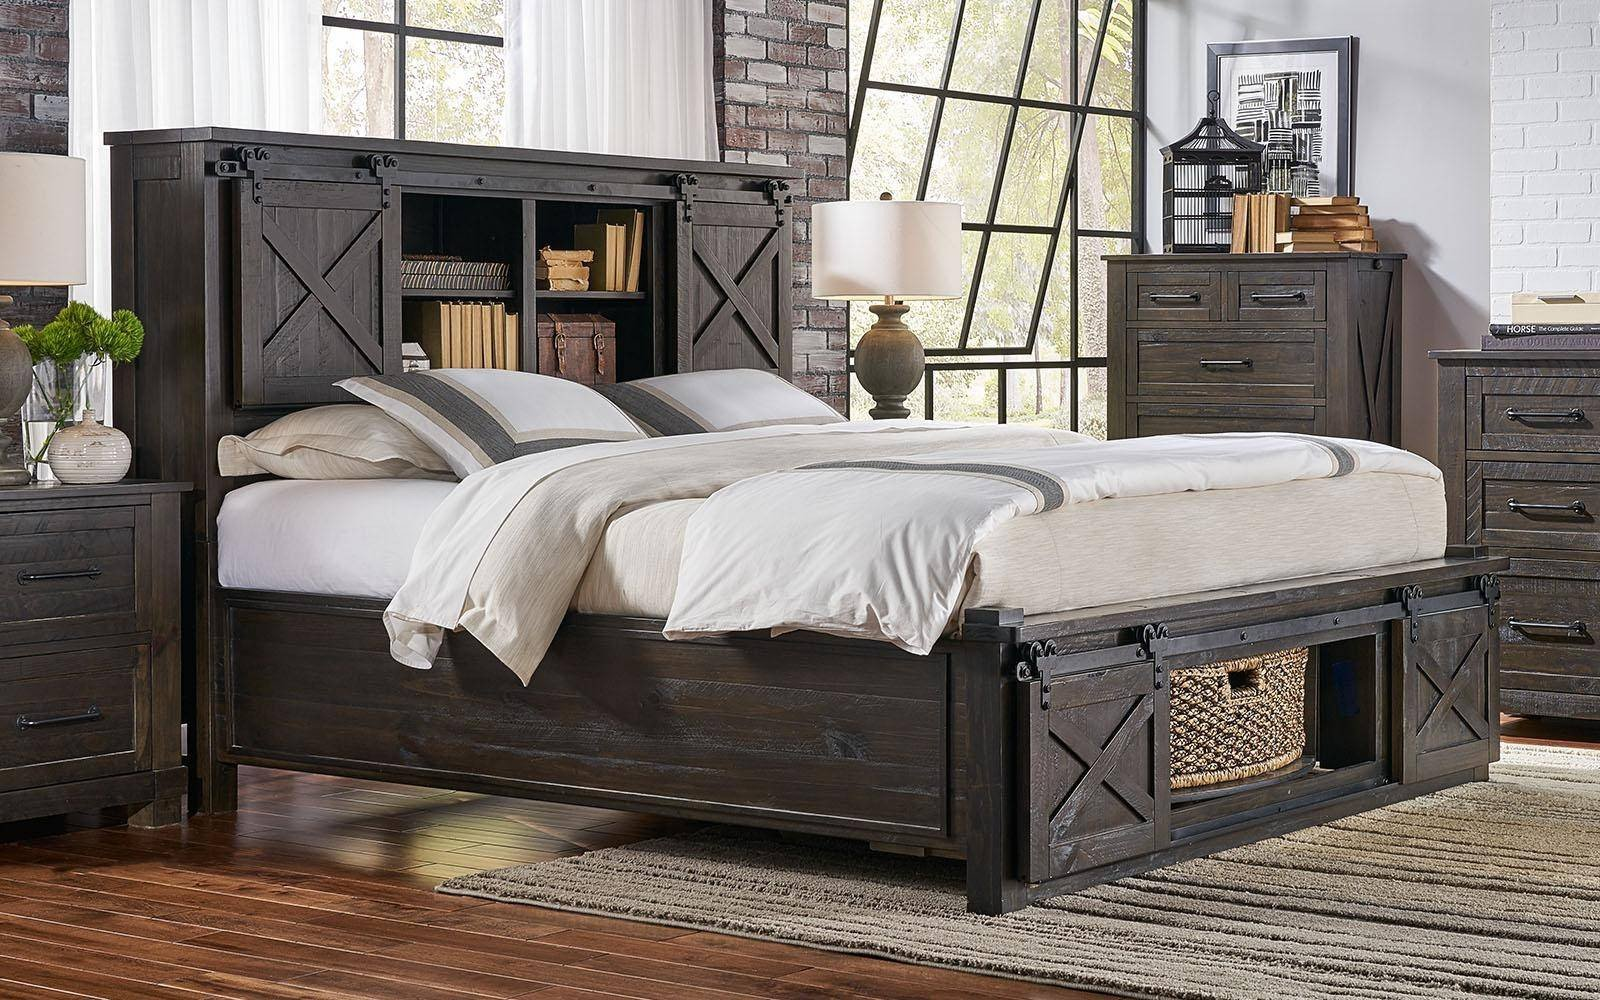 Bedroom Set with Storage Awesome Rustic Queen Rotating Storage Bedroom Set 5pcs Suvcl5032 A